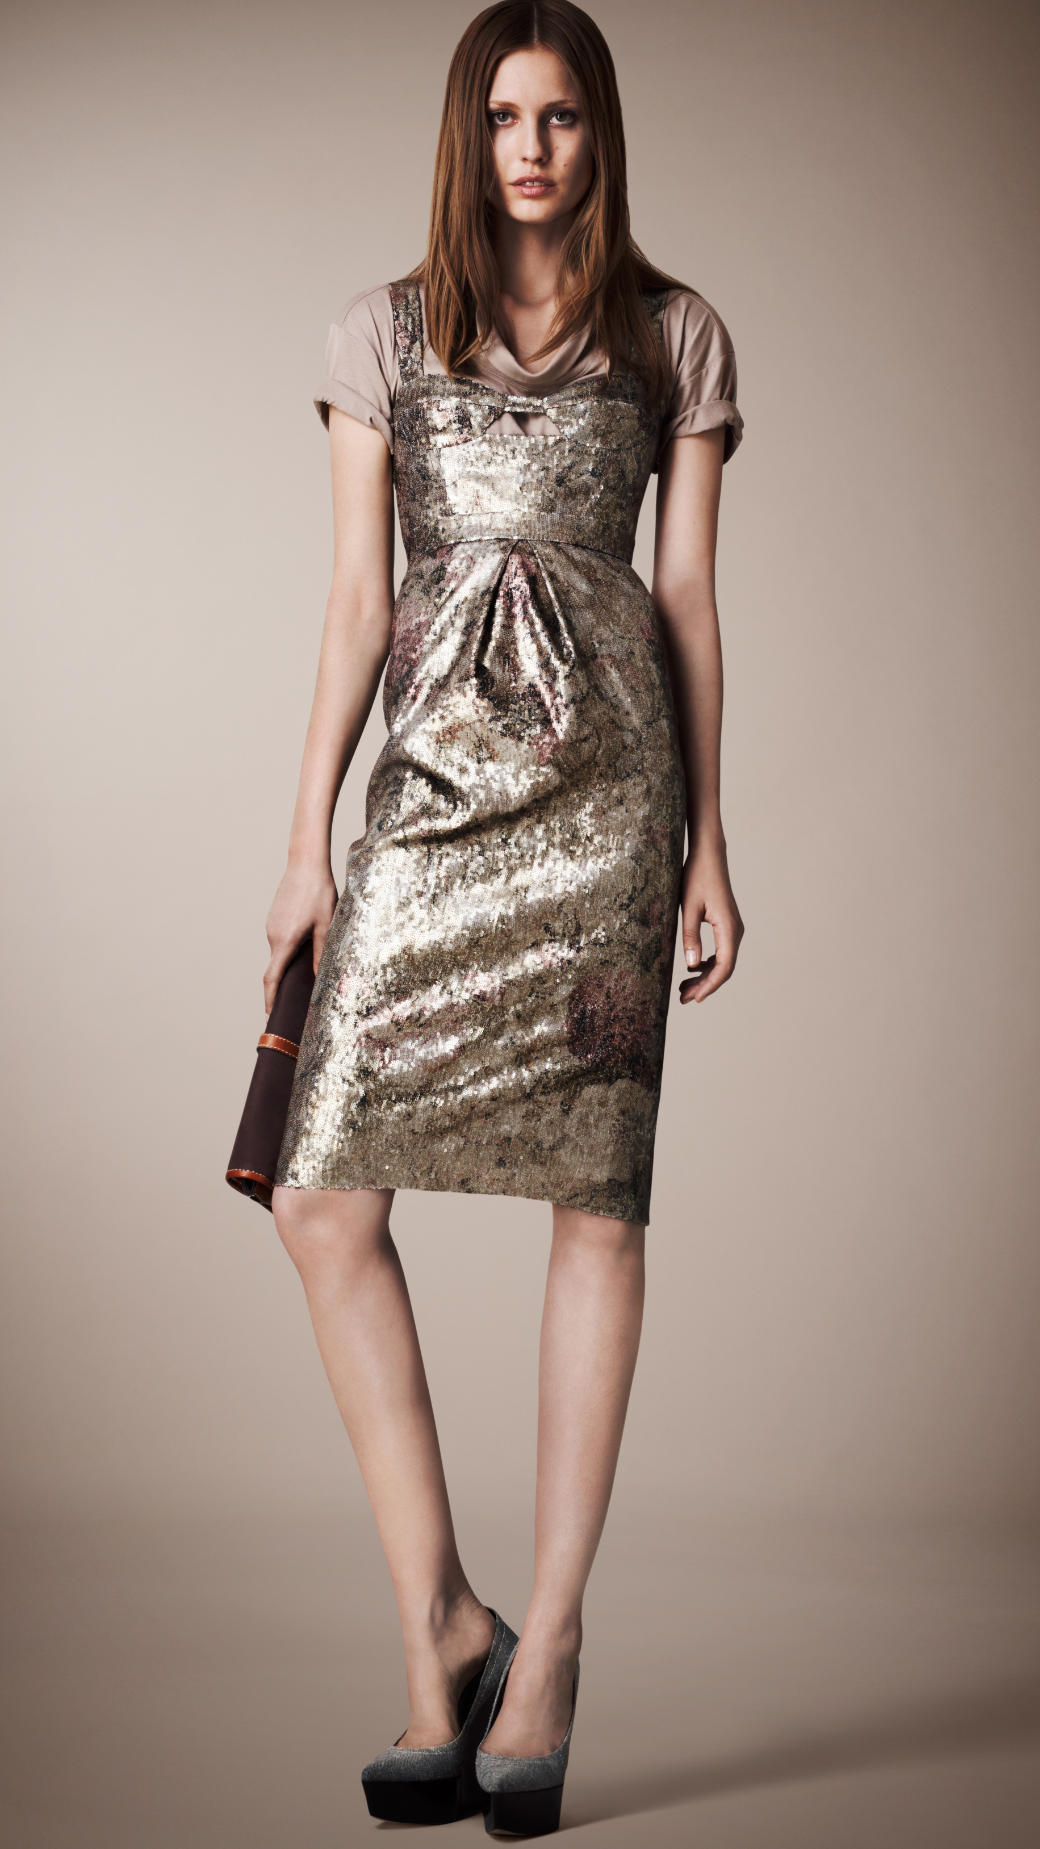 Lyst Burberry Prorsum Sequin Bustier Dress In Metallic